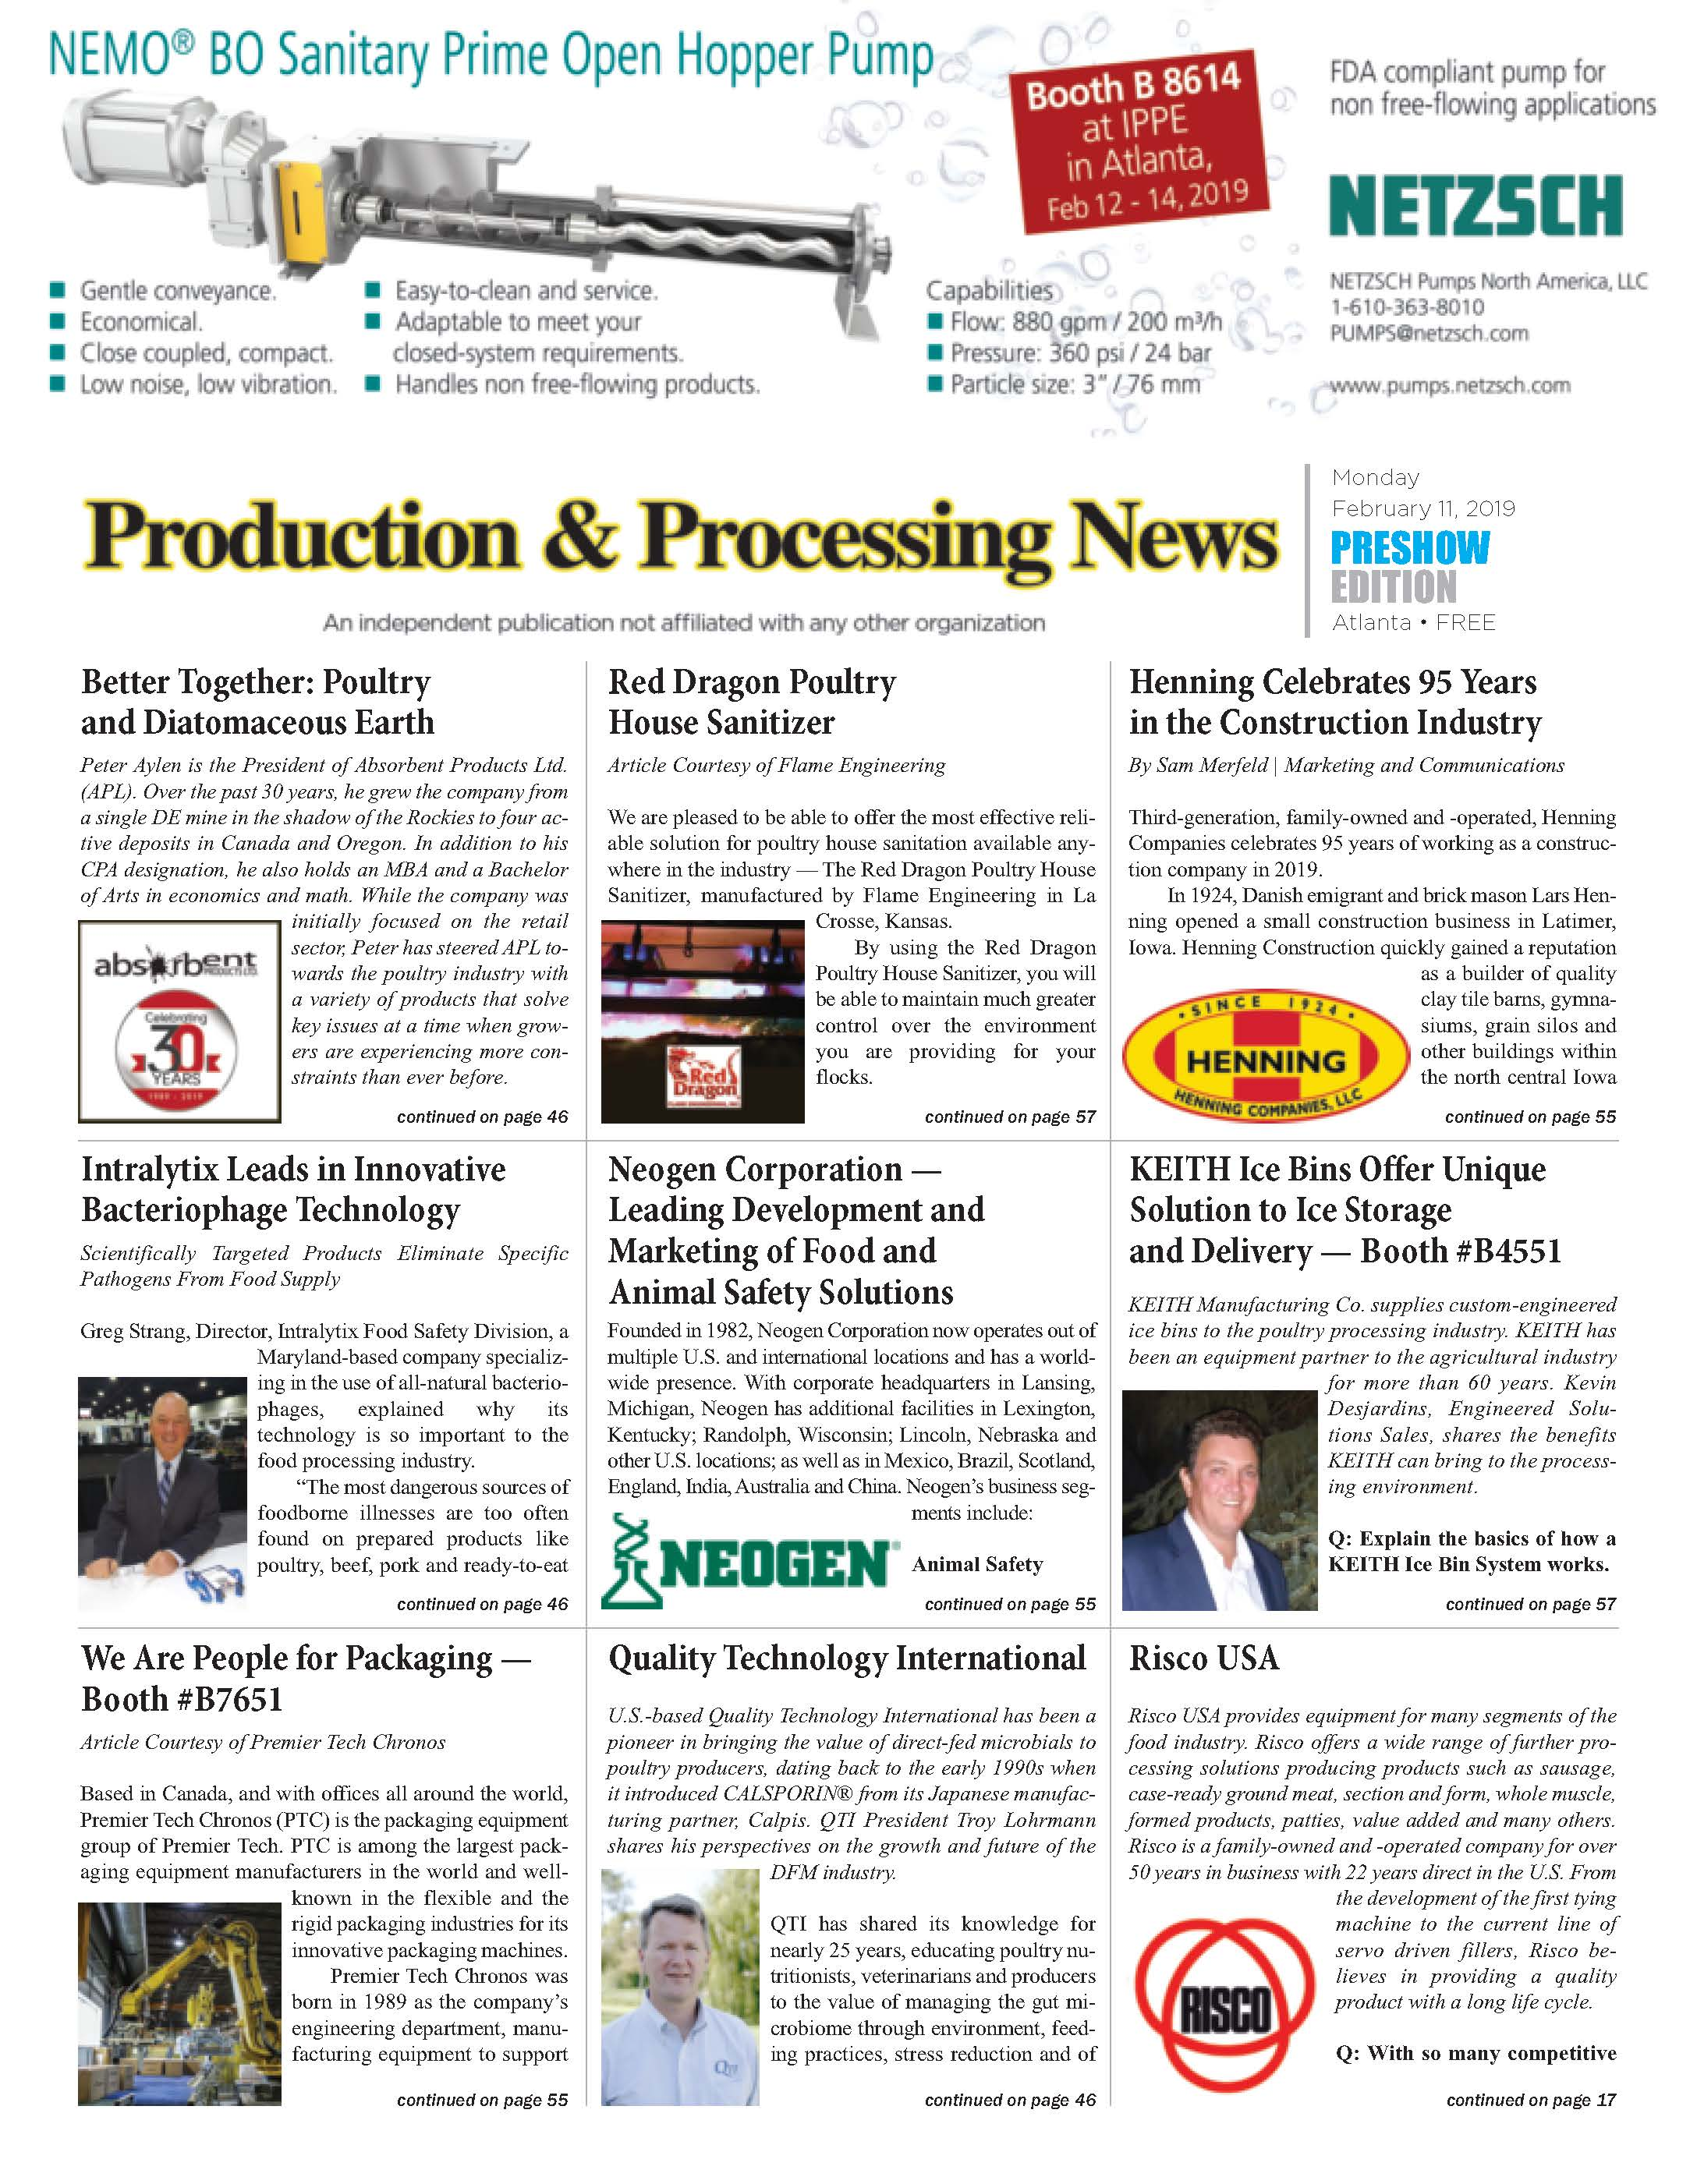 Production and Processing News